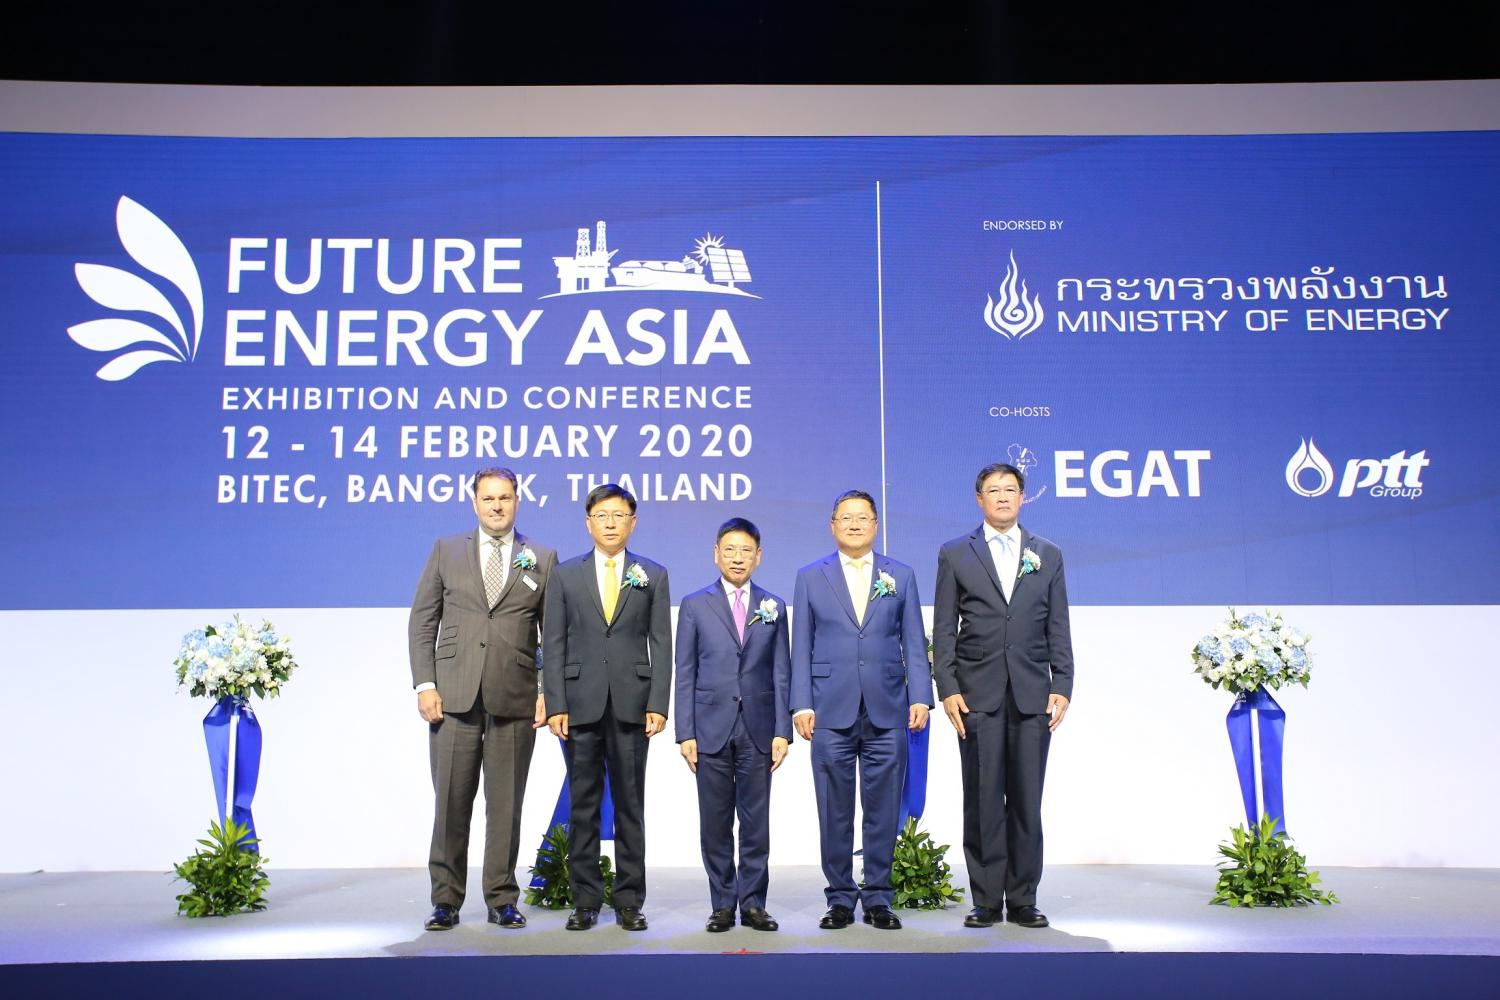 From left are Mr. Nick Ornstein, vice president energy, DMG events, Viboon Rerksirathai, EGAT governor, Kulit Sombatsiri, permanent secretary, Ministry of Energy, Chansin Treenuchagron, president and chief executive officer, PTT Plc and Phongsthorn Thavisin, president and chief executive officer, PTT Exploration and Production Plc.